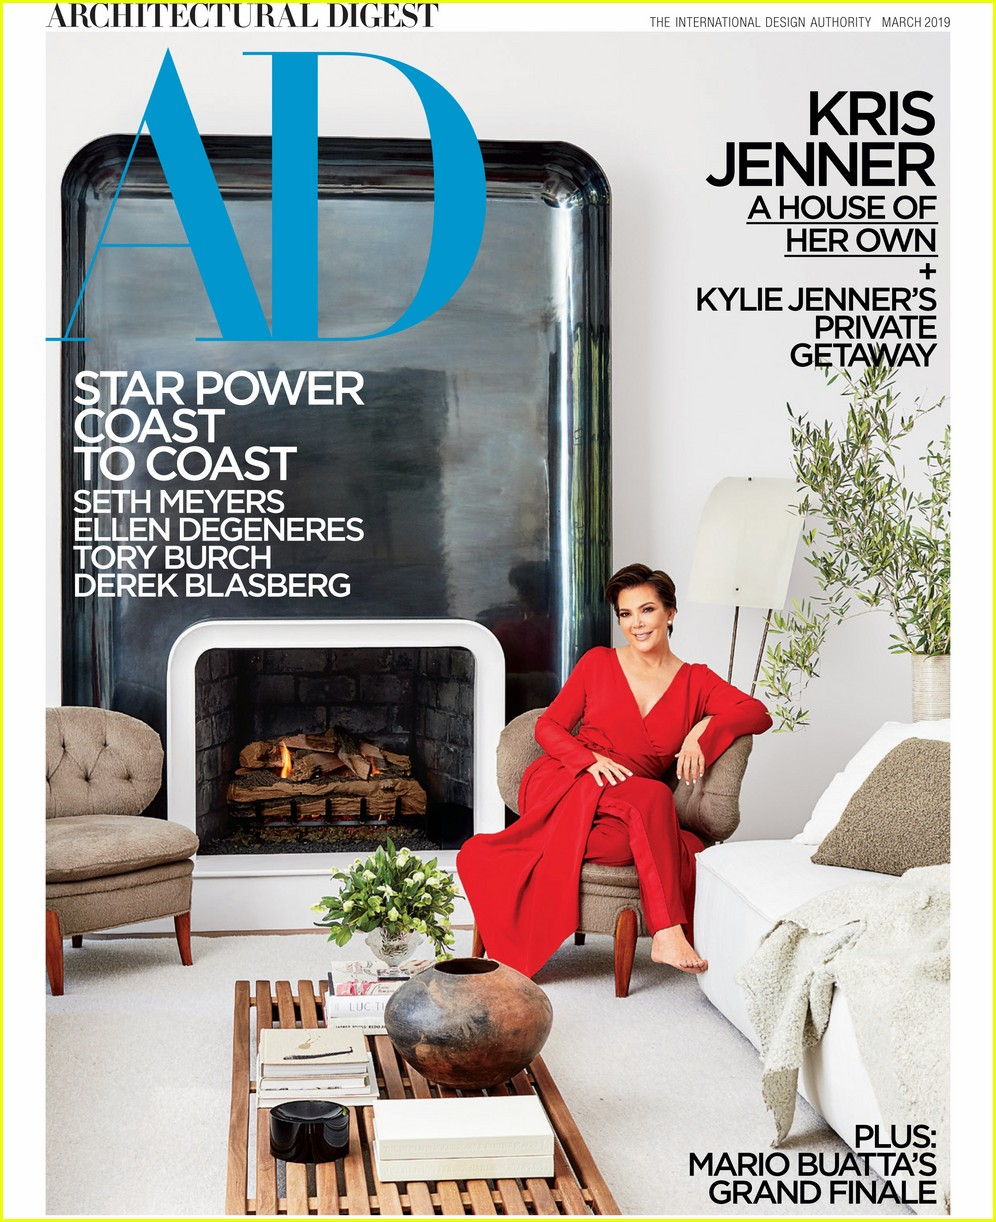 2048x2048 Kylie Jenner In Her House 5k Ipad Air Hd 4k: Kylie Jenner Opens Up About How She Decorates Her House